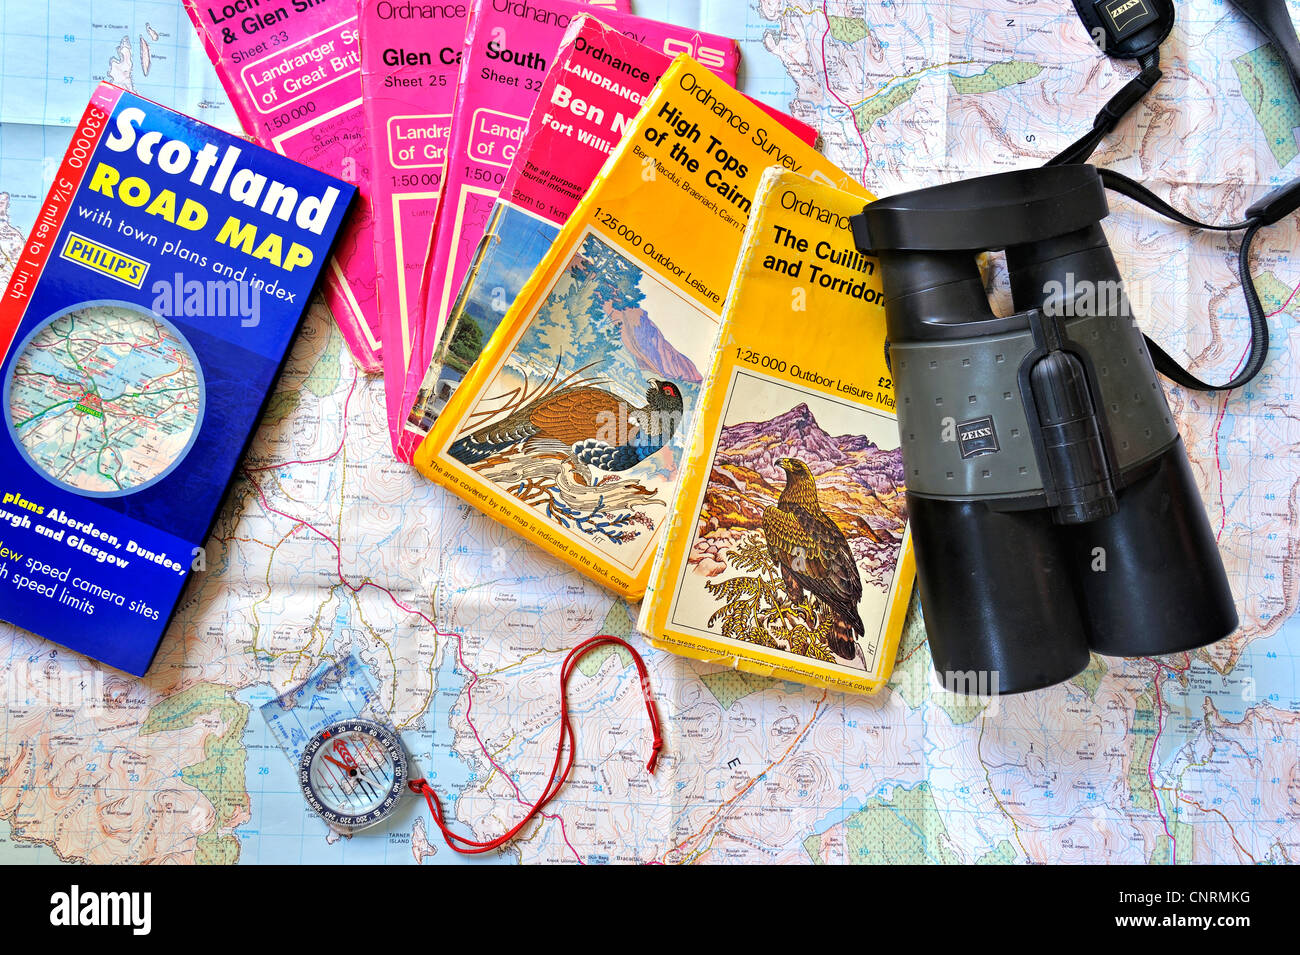 Compass, binoculars and assortment of Scottish Ordnance Survey topographical maps about Scotland, UK to plan wildlife - Stock Image